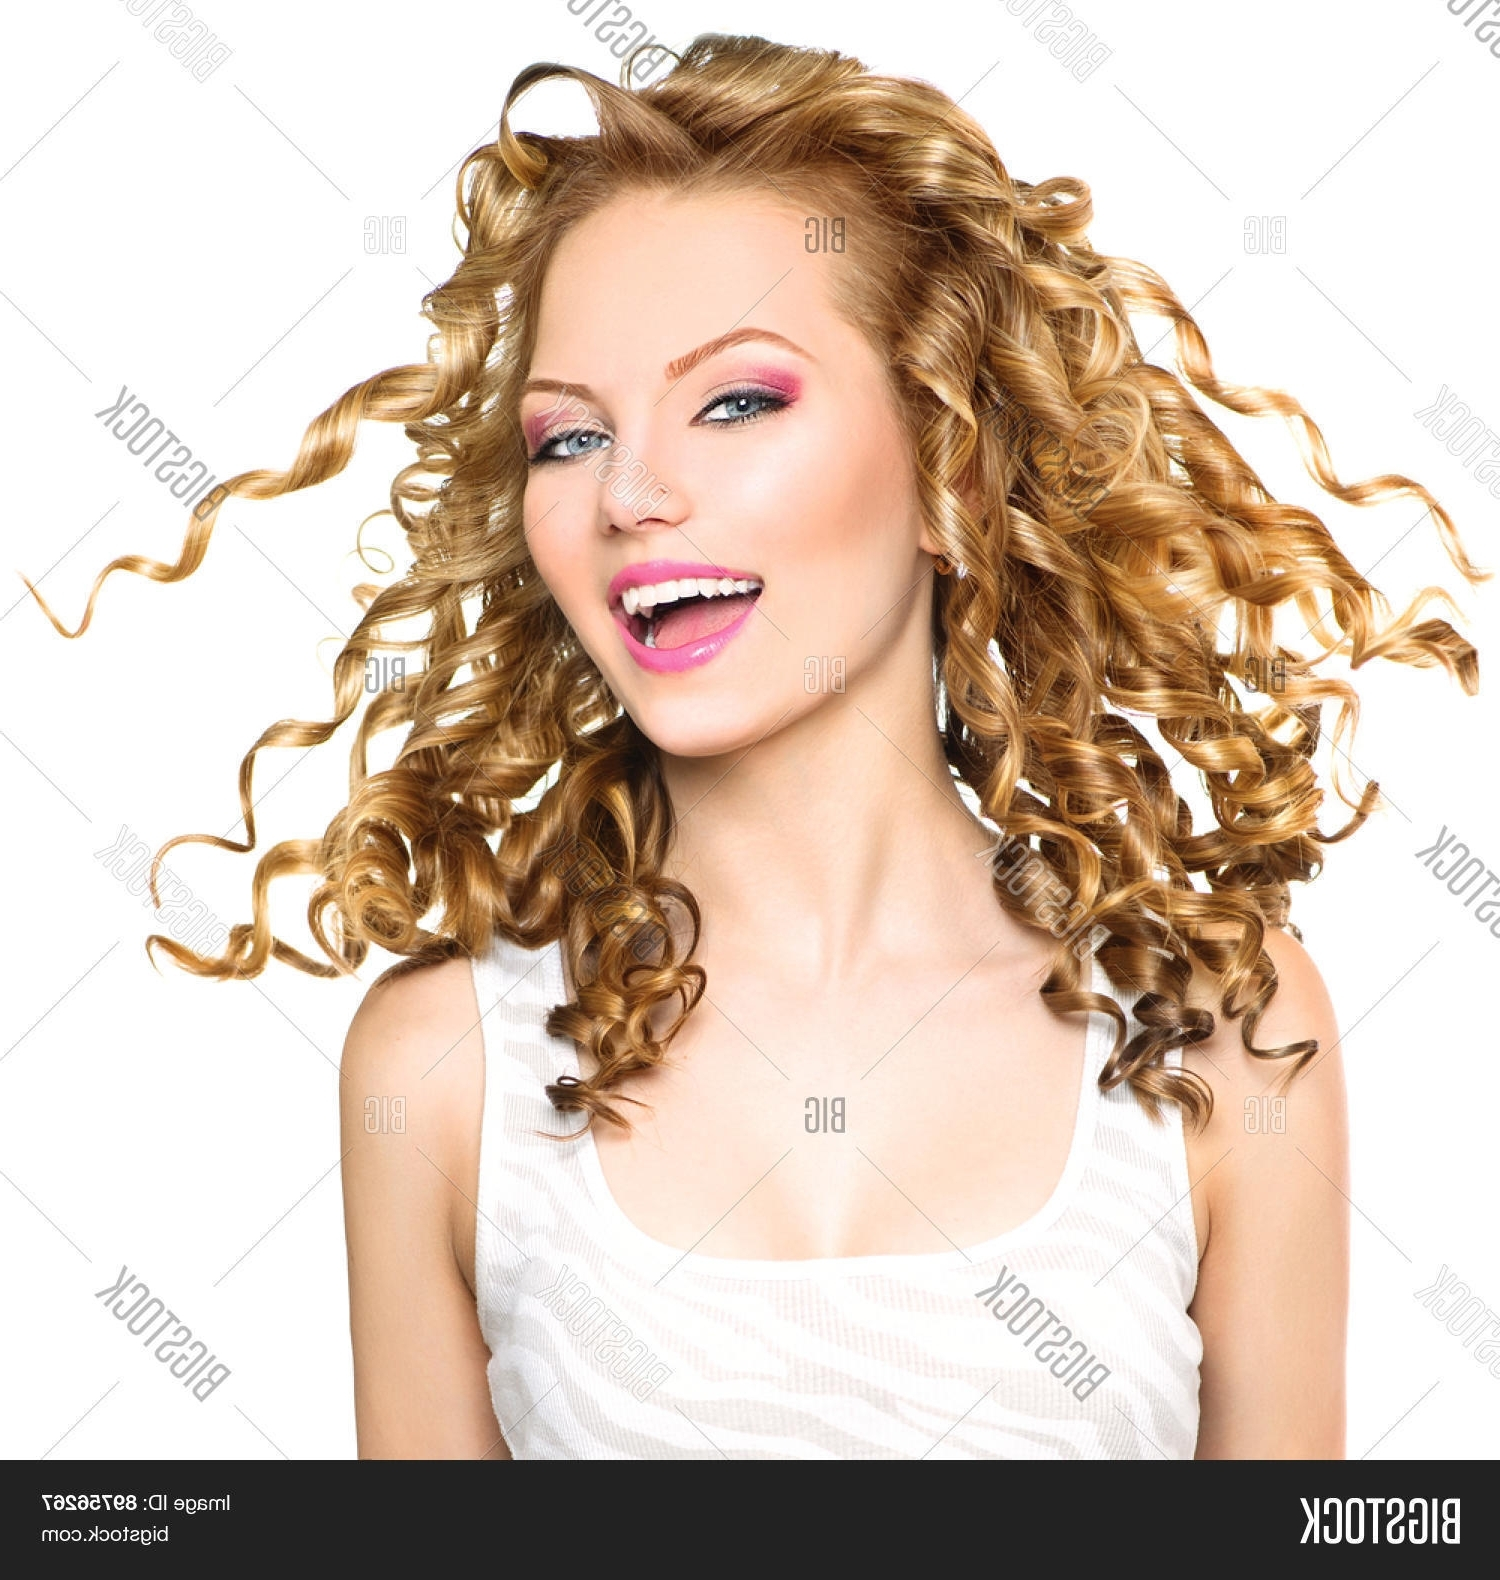 Bigstock With Regard To Well Known White Blonde Curls Hairstyles (View 6 of 20)